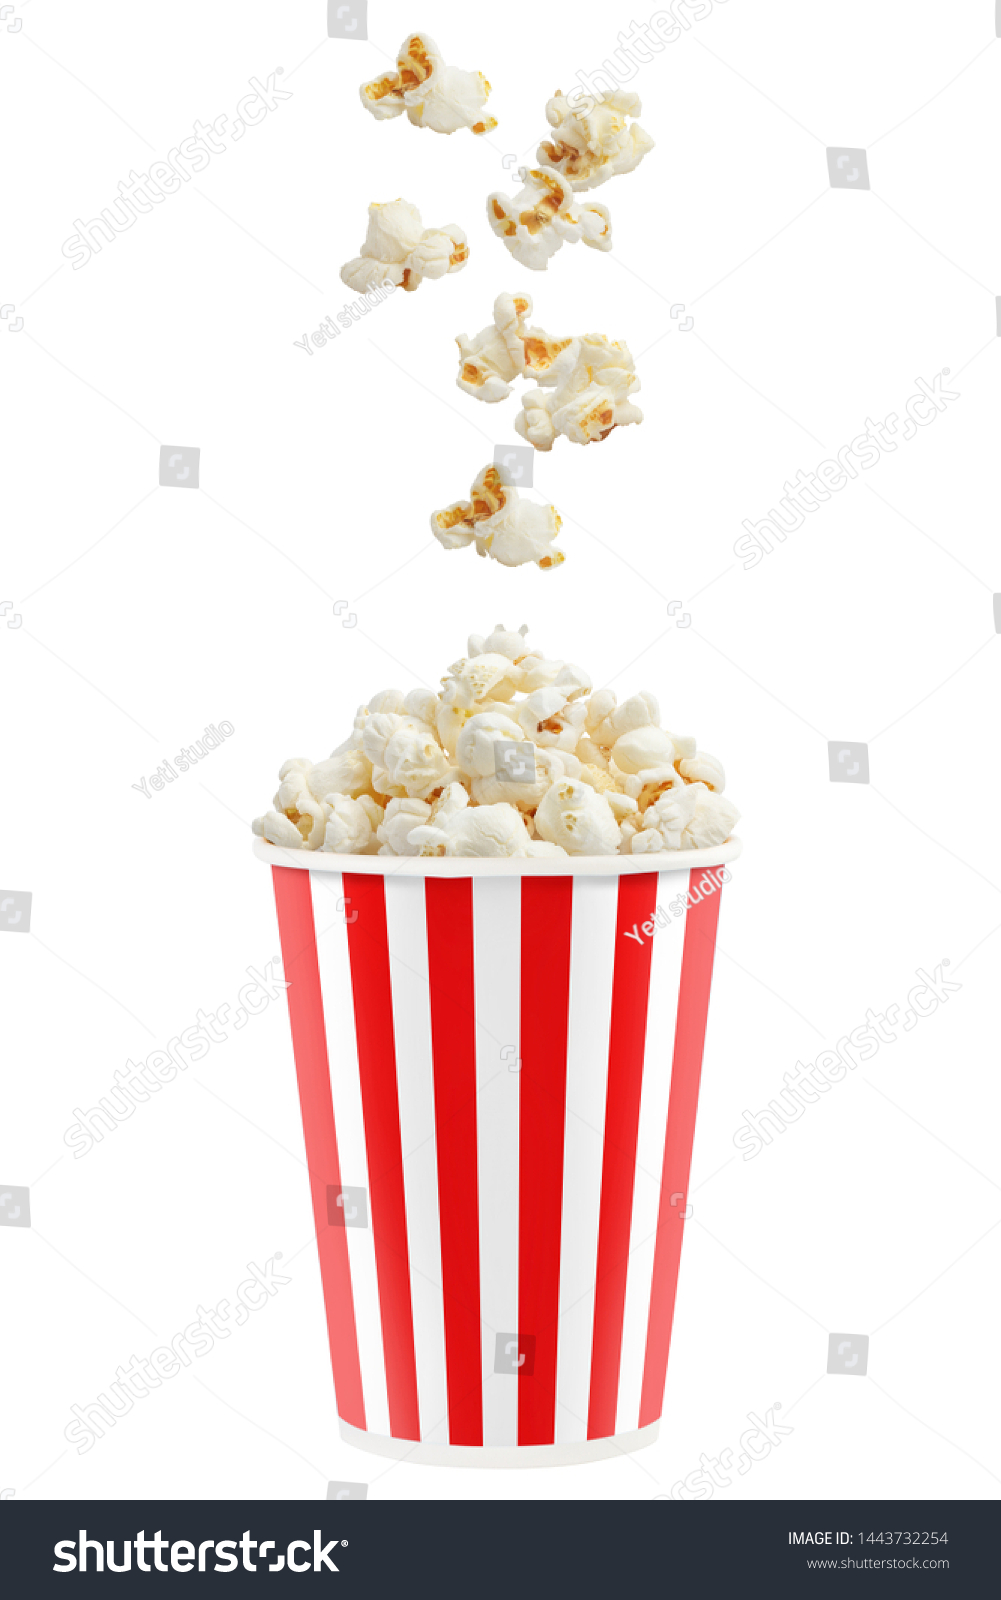 Popcorn falling into a red striped paper cup, isolated on white background #1443732254